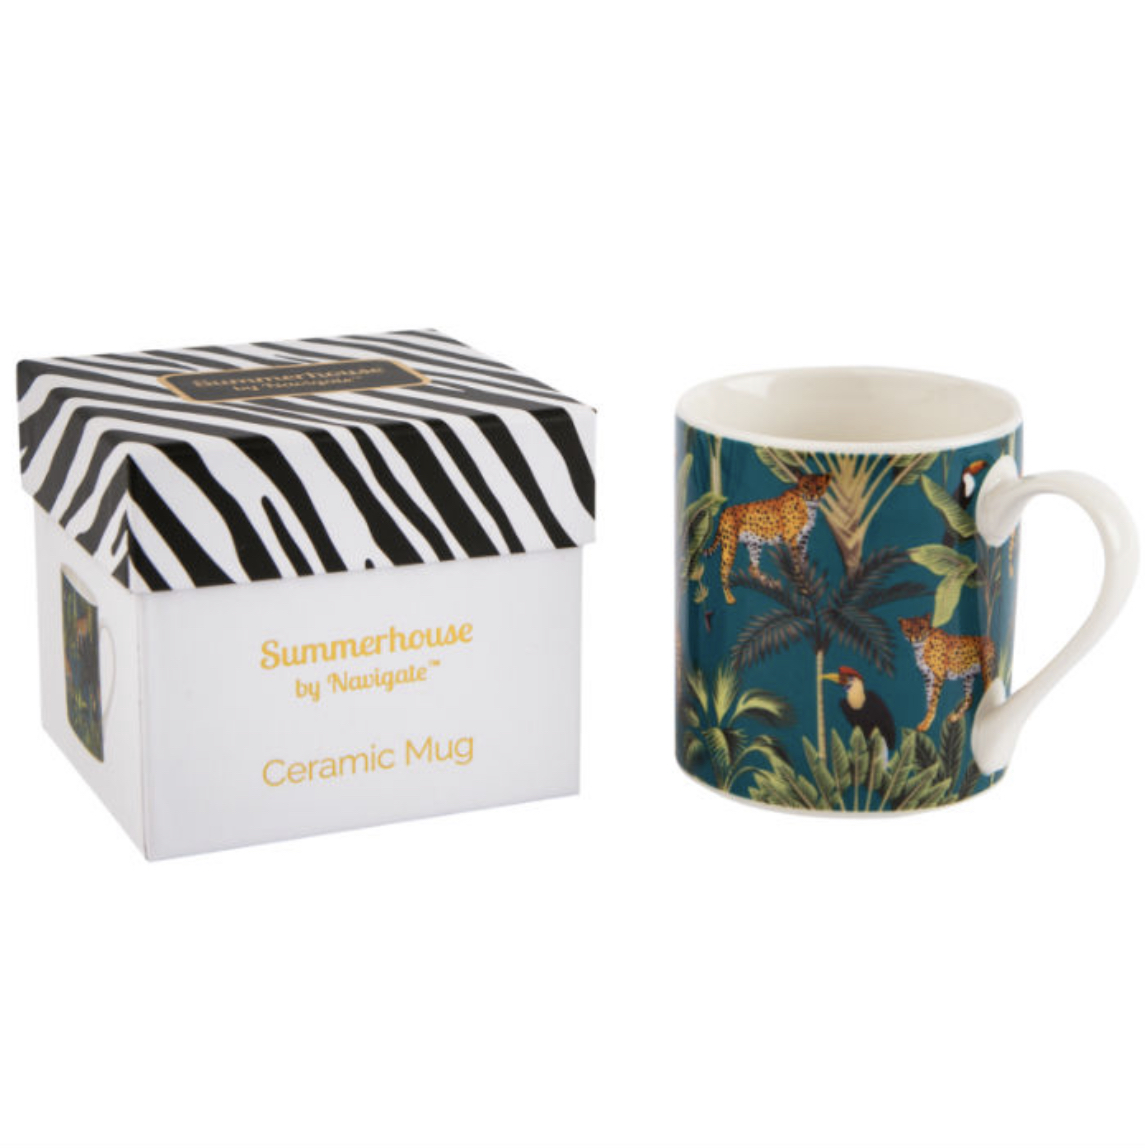 CHEETAH & TOUCAN MUG IN GIFT BOX. JUNGLE DESIGN HOMEWARE